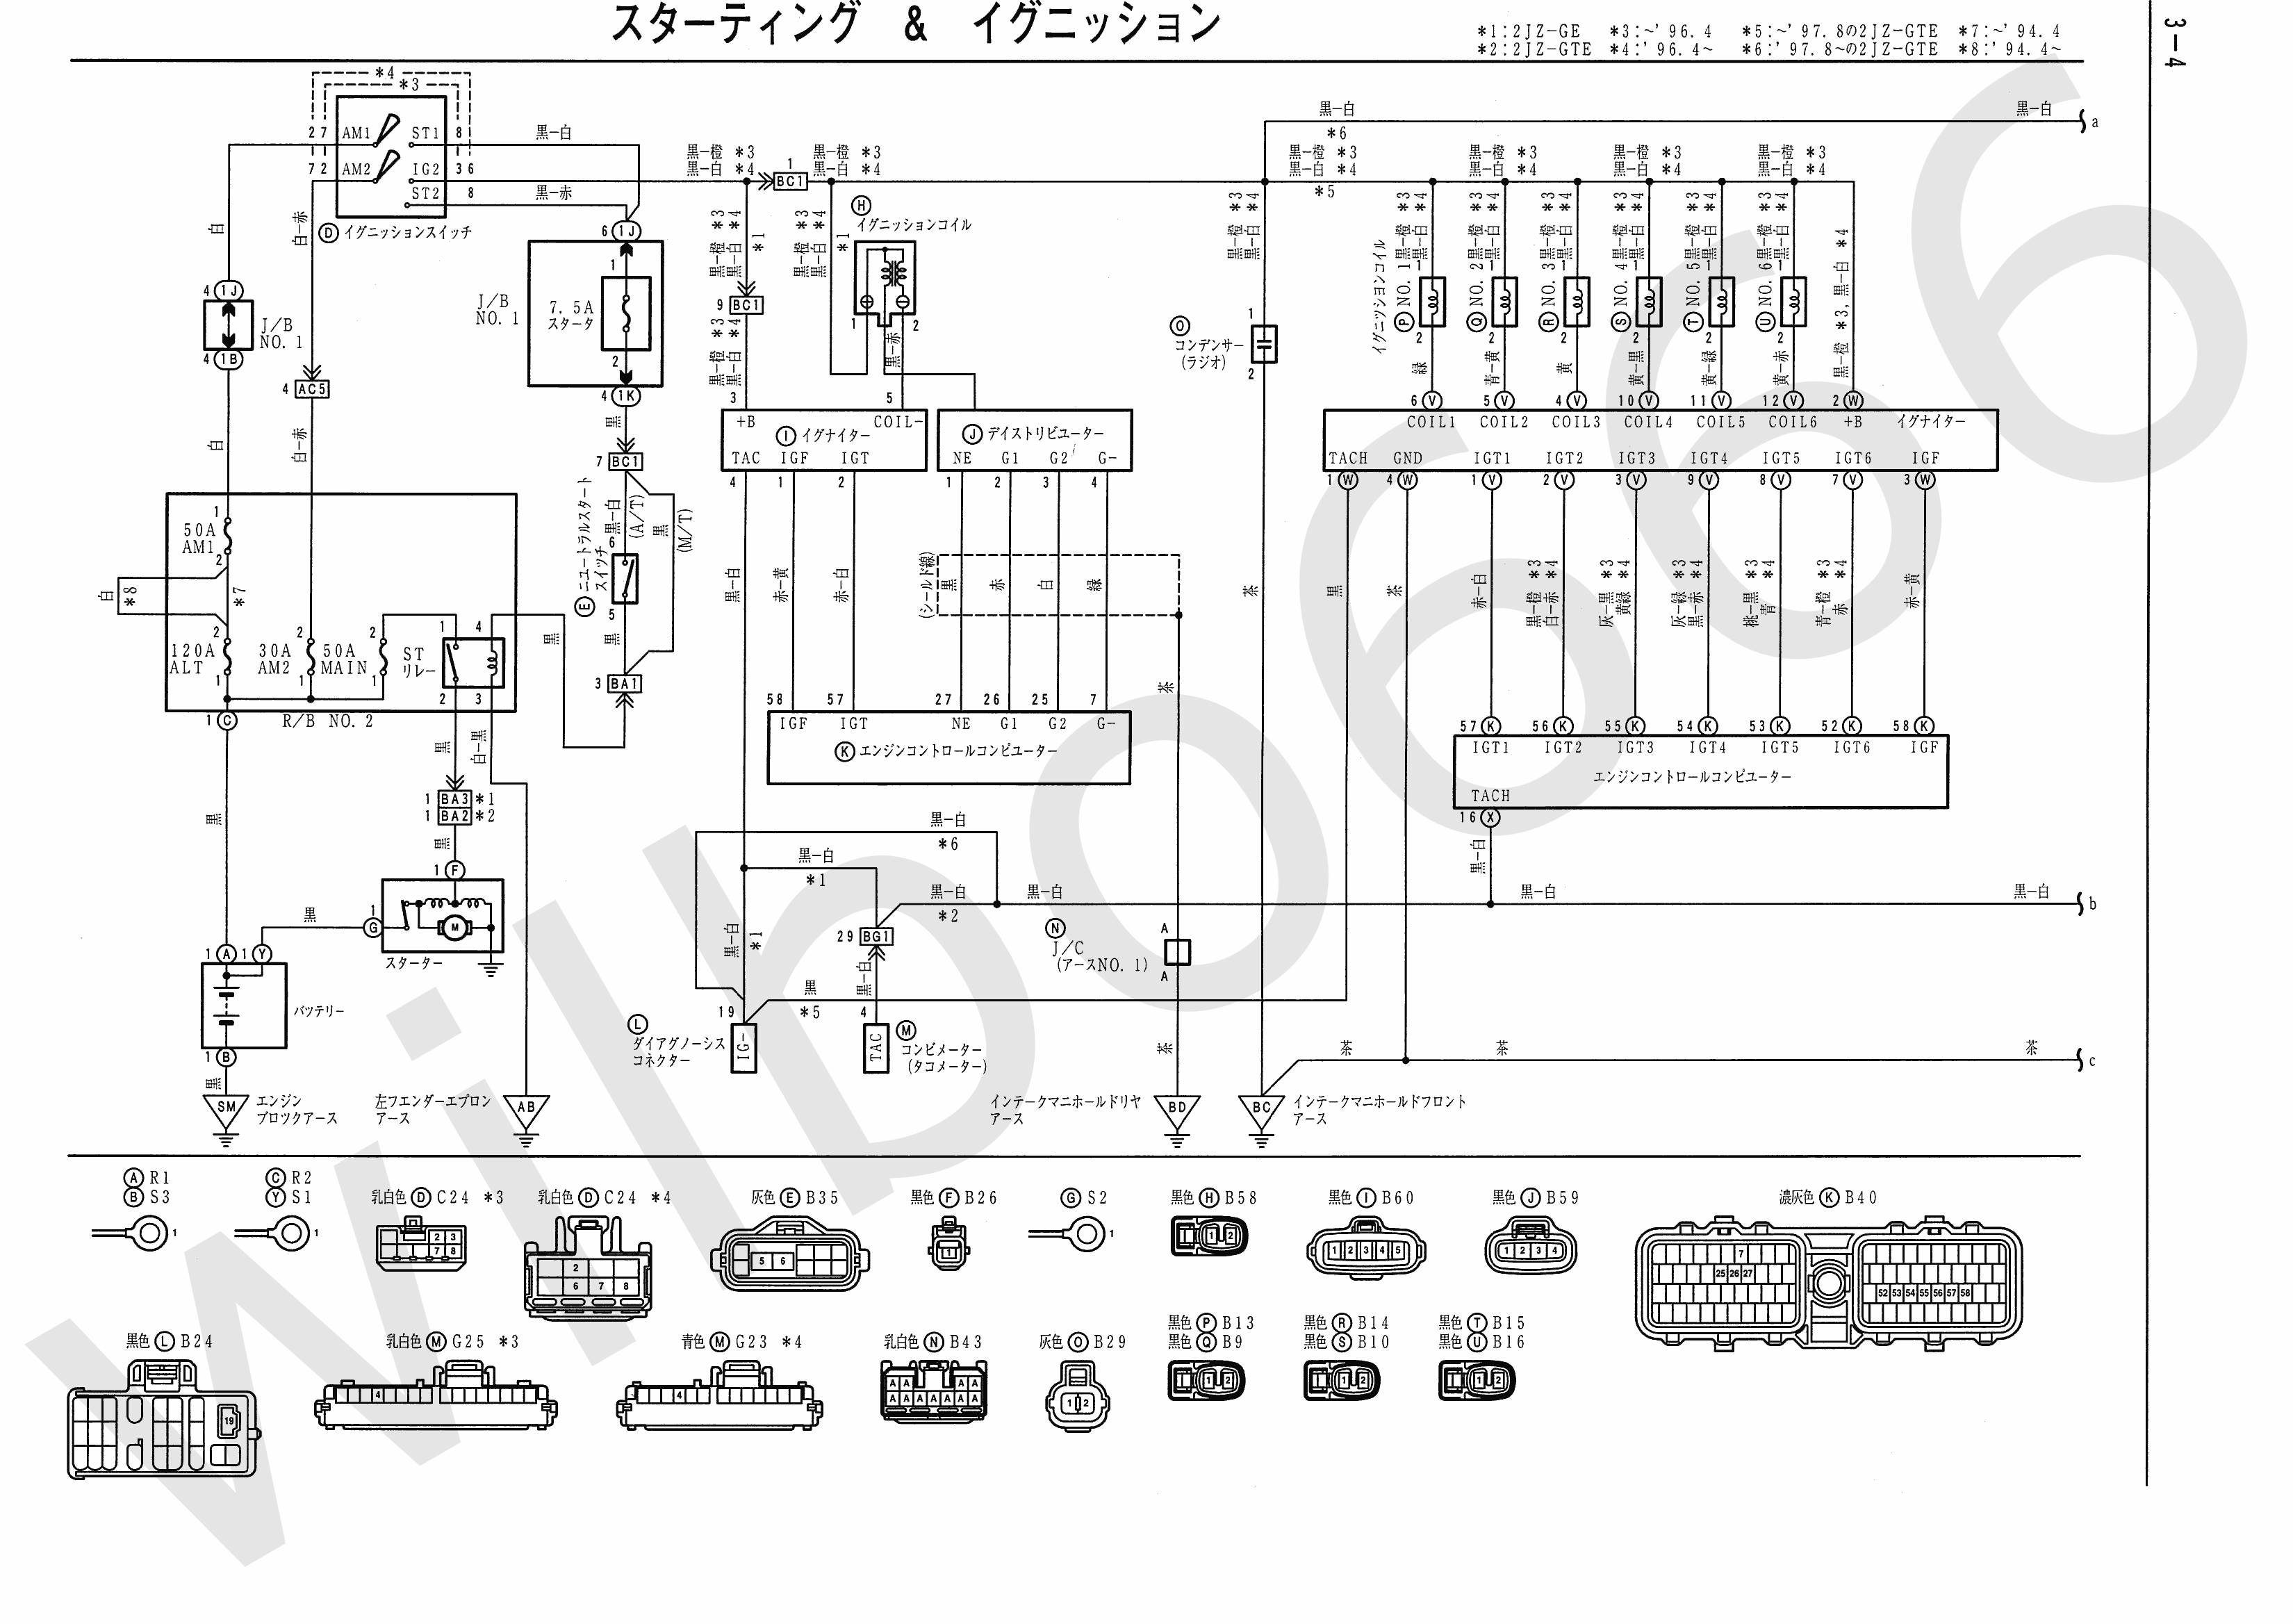 JZA80 Electrical Wiring Diagram 6742505 3 4?resize\\\\\\\\\\\\\\\\\\\\\\\\\\\=665%2C471 satchwell room thermostats thermostat pinout on satchwell satchwell thermostat wiring diagram at readyjetset.co